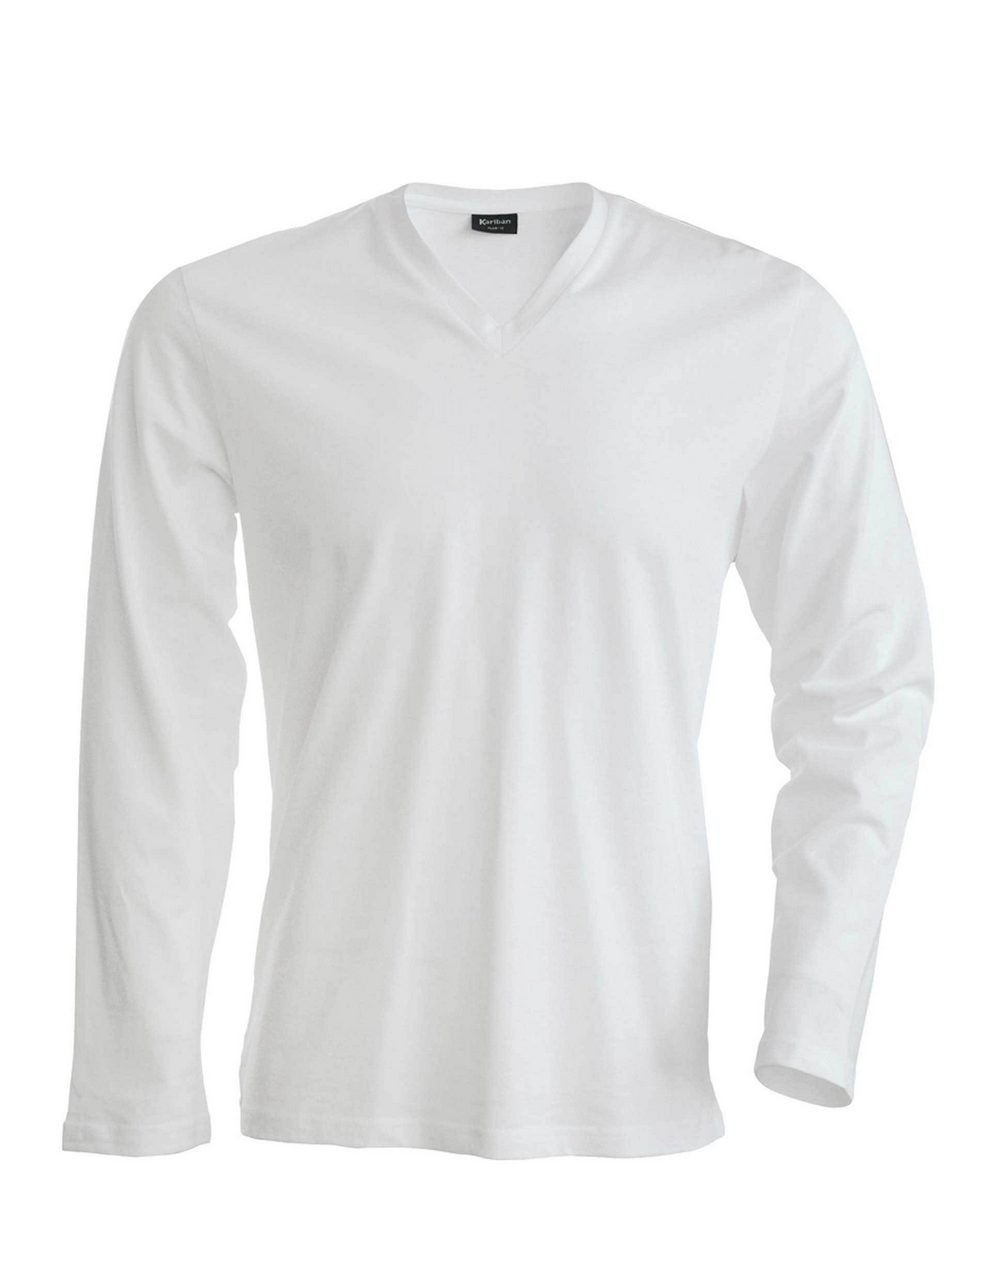 56ff245ff618 Kariban Men s Long Sleeve V-neck T-shirt